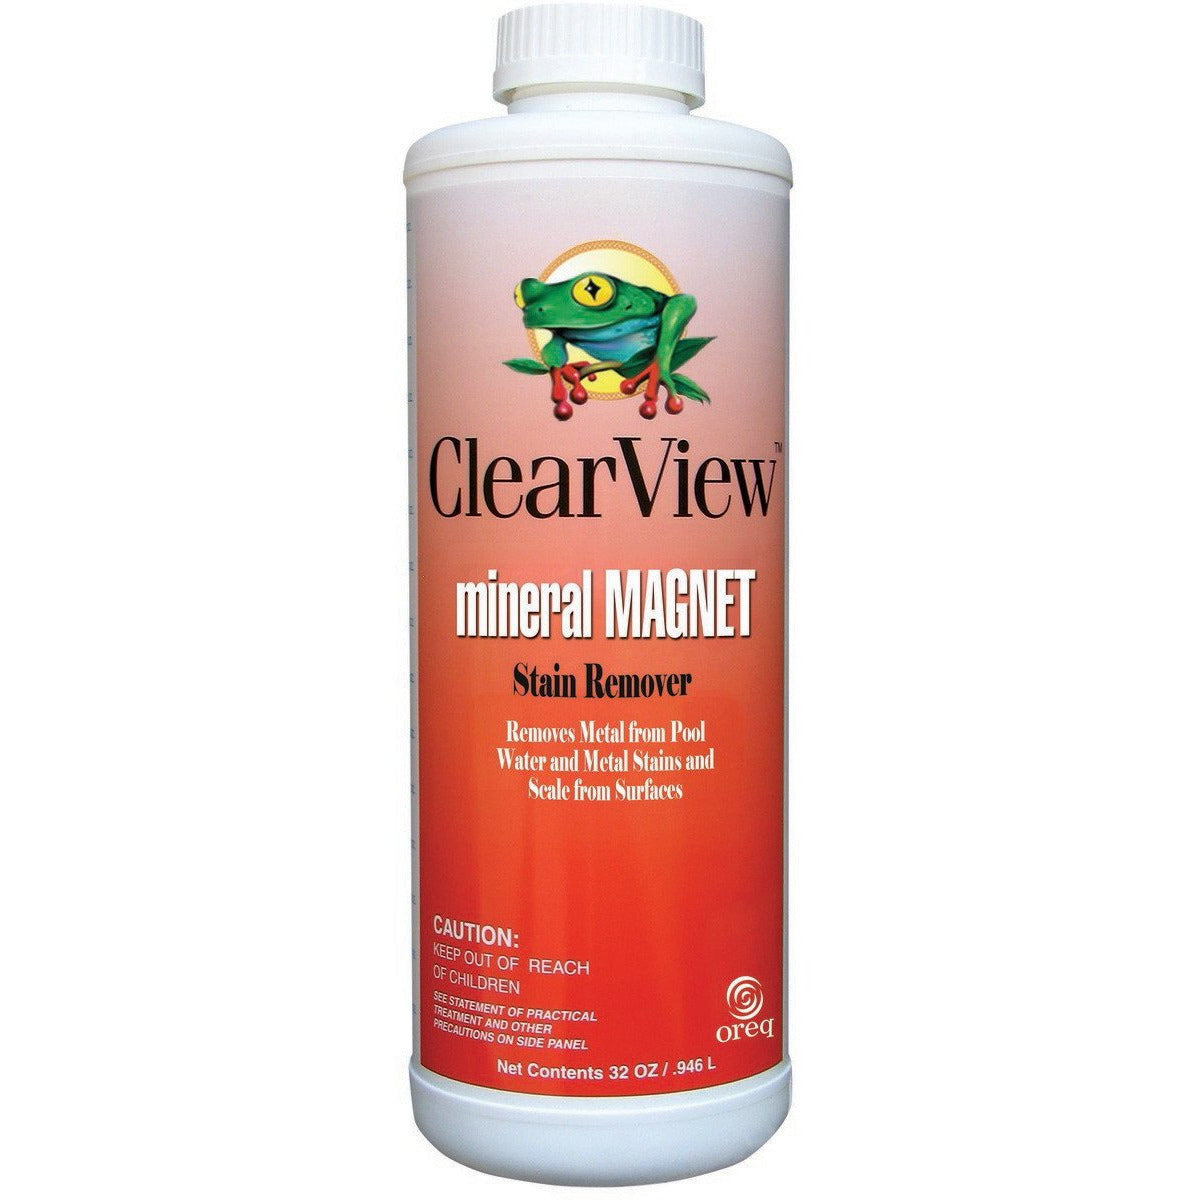 ClearView Mineral Magnet 1 qt